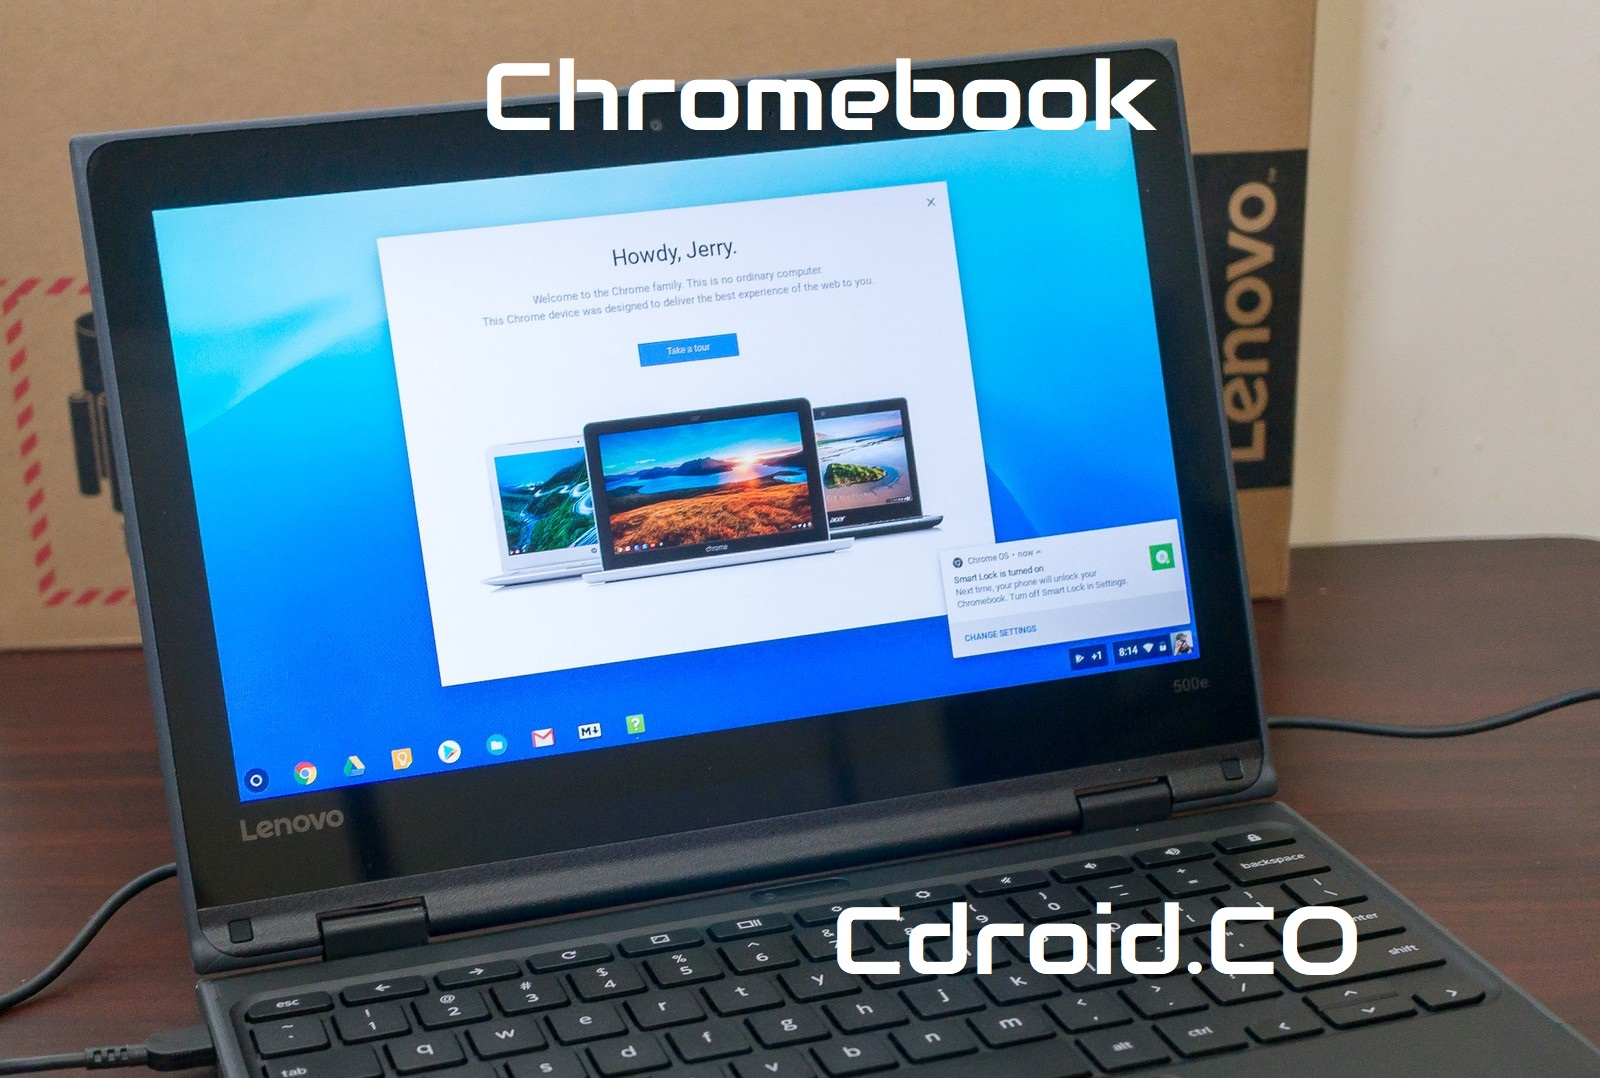 La seguridad de Chromebook